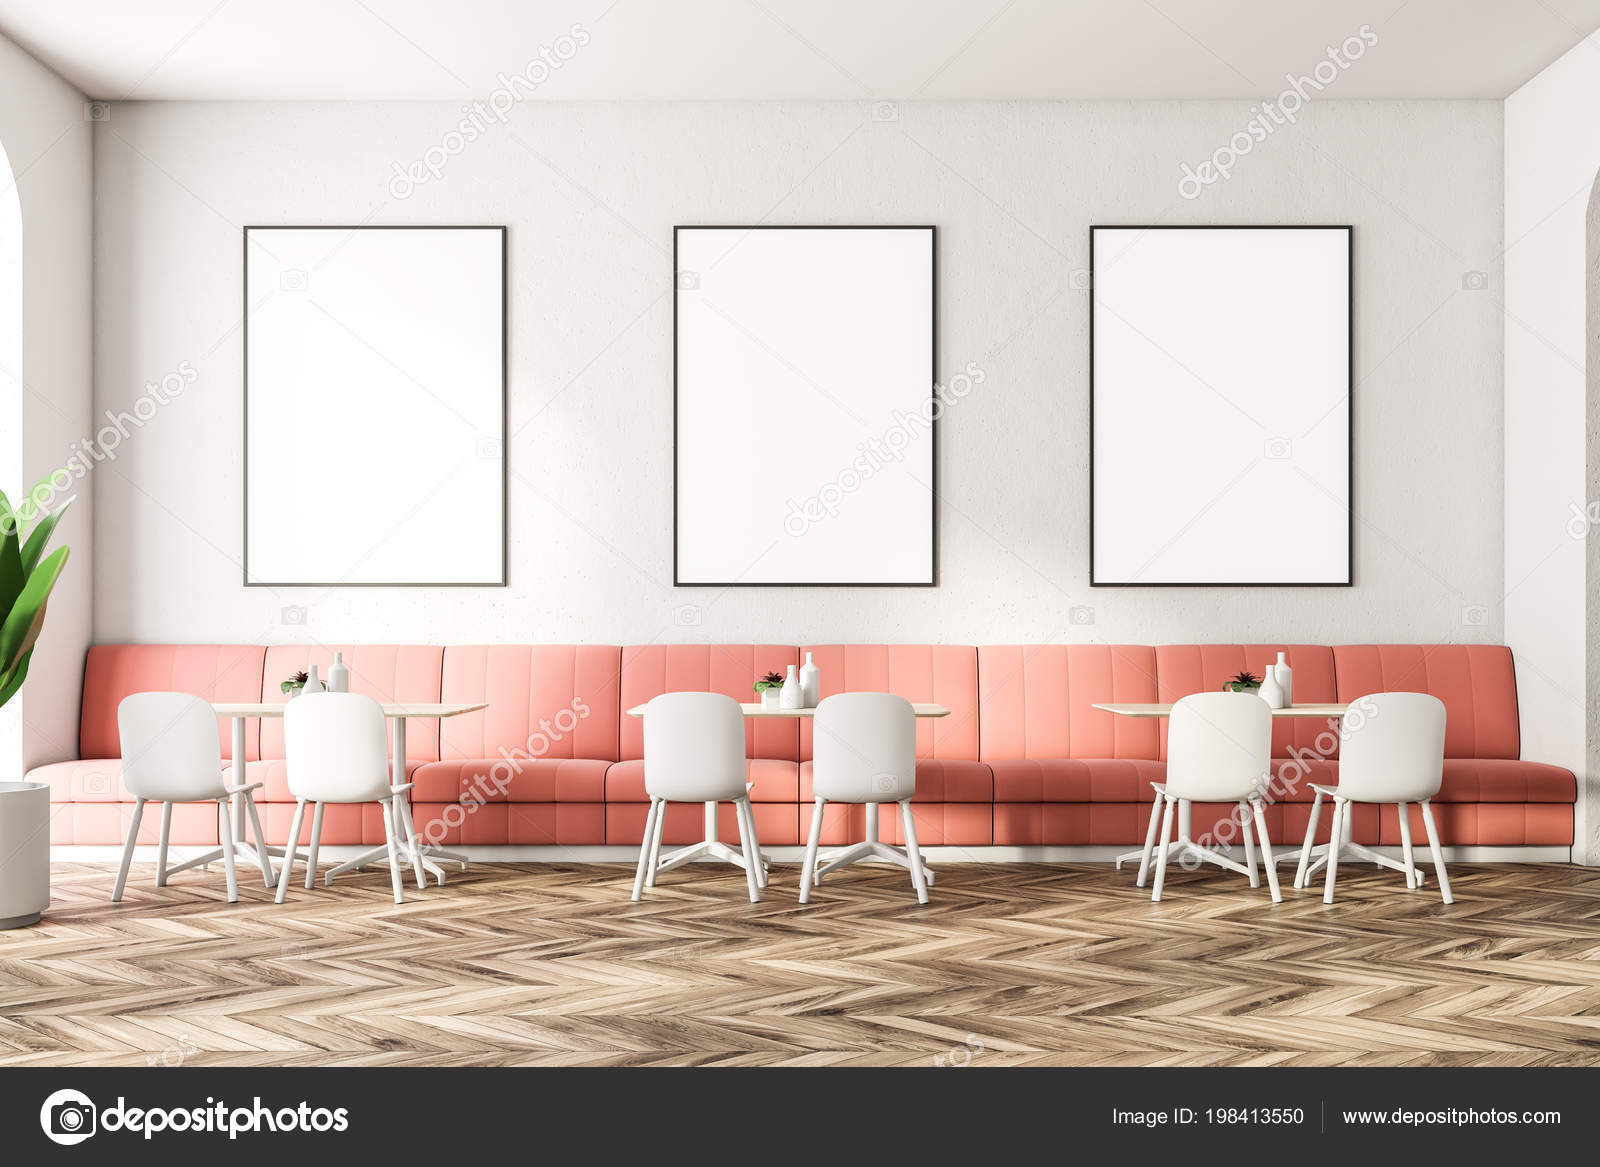 Strange Poster Gallery Modern Restaurant Interior Pink Sofas White Caraccident5 Cool Chair Designs And Ideas Caraccident5Info